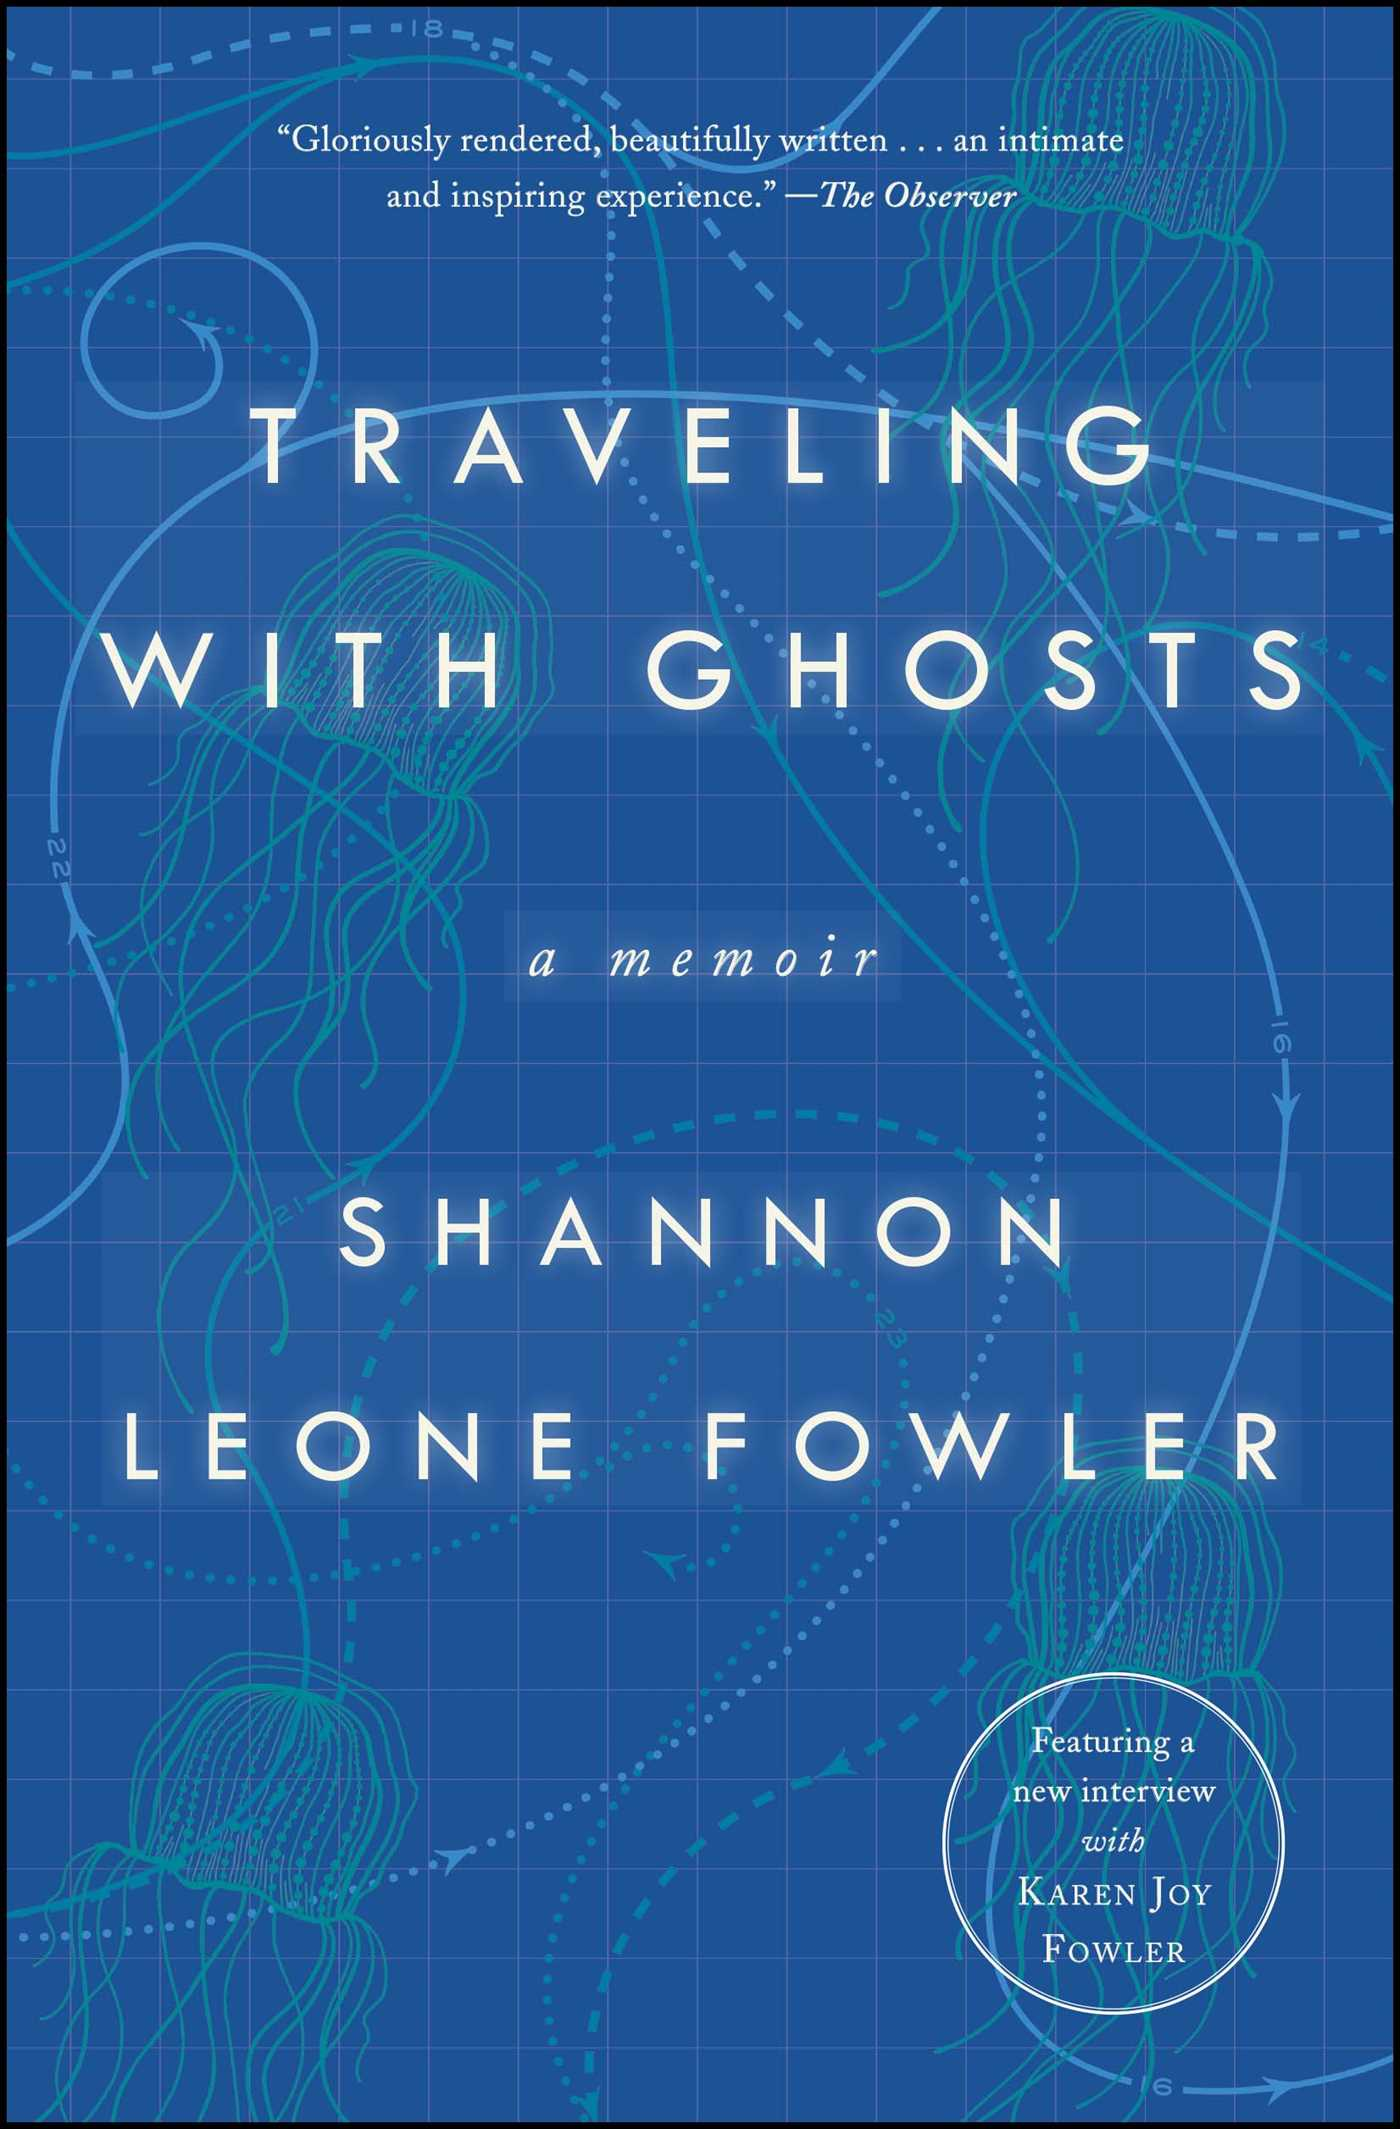 Traveling with ghosts 9781501107863 hr